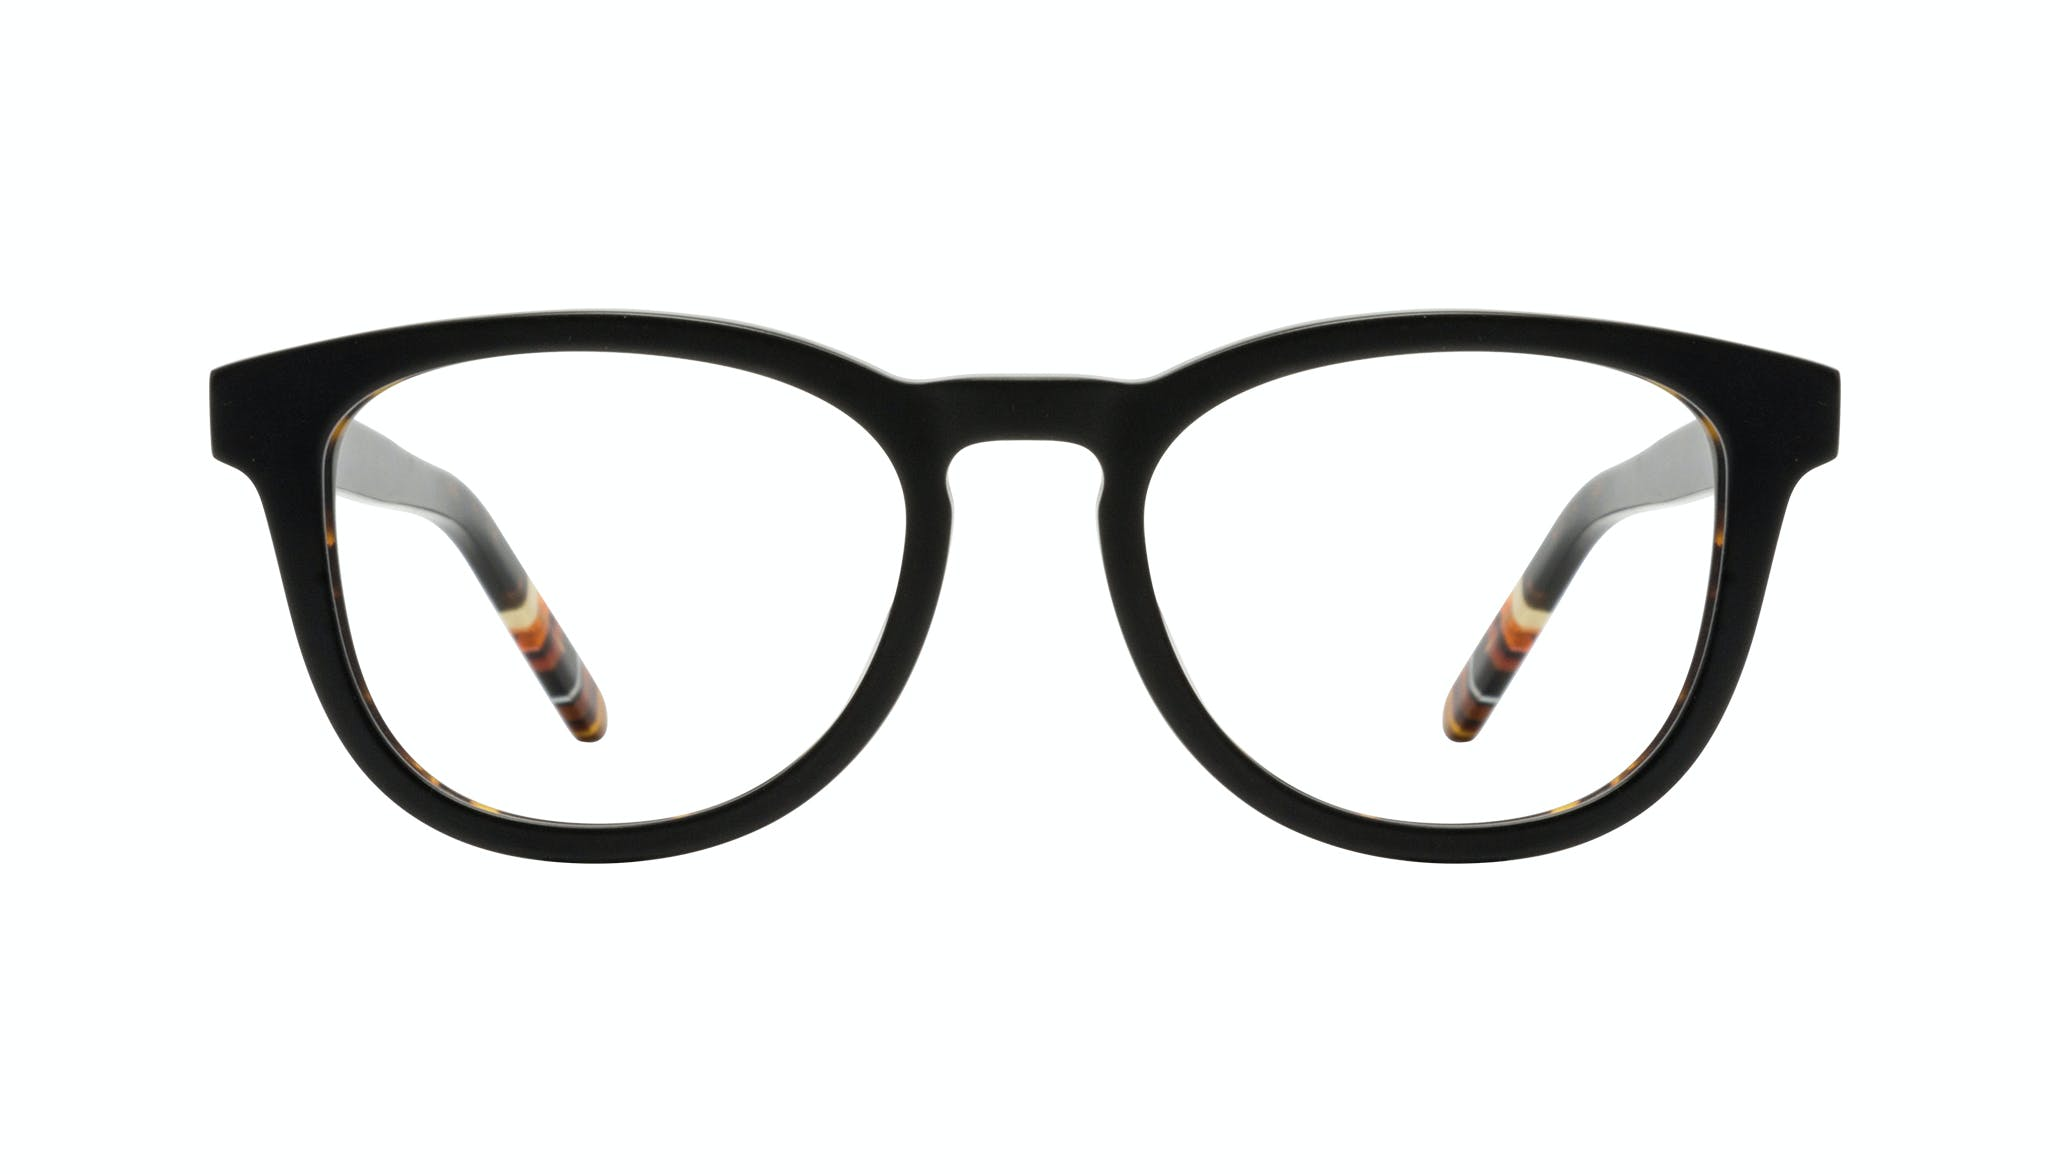 Affordable Fashion Glasses Round Eyeglasses Men Goal Black Tort Front